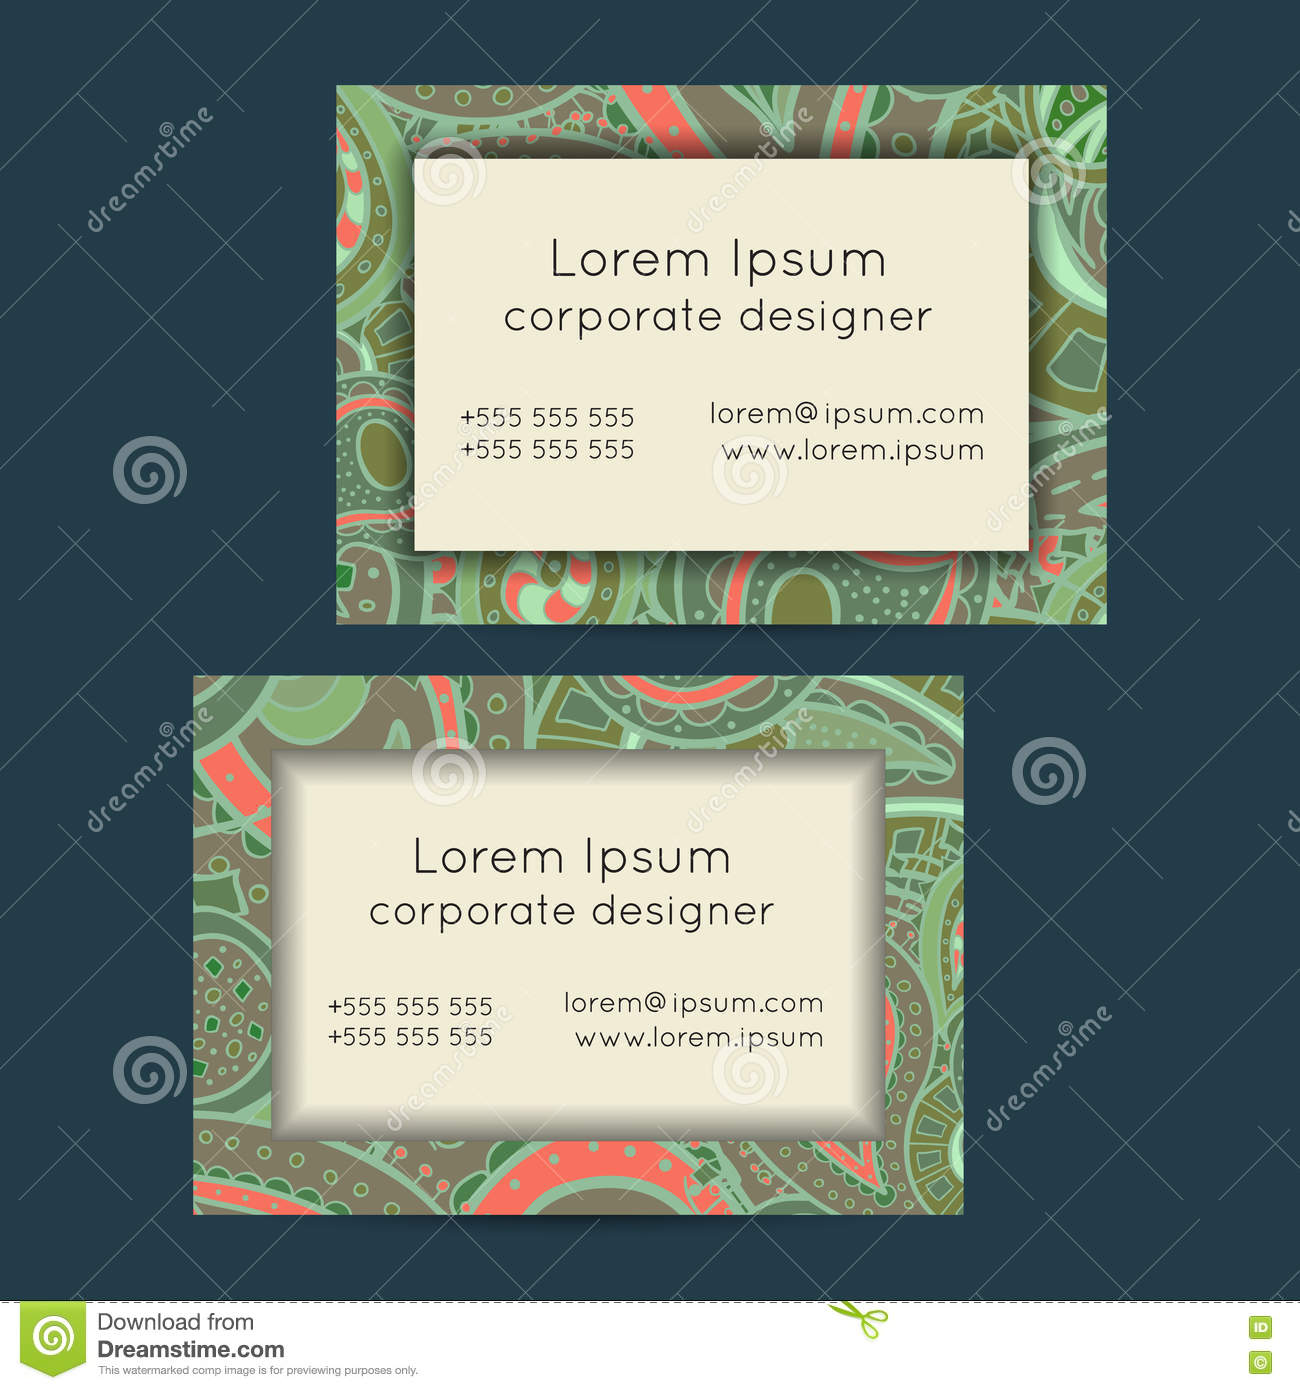 Paisley business cards images free business cards paisley business cards choice image free business cards paisley business cards images free business cards boho magicingreecefo Images